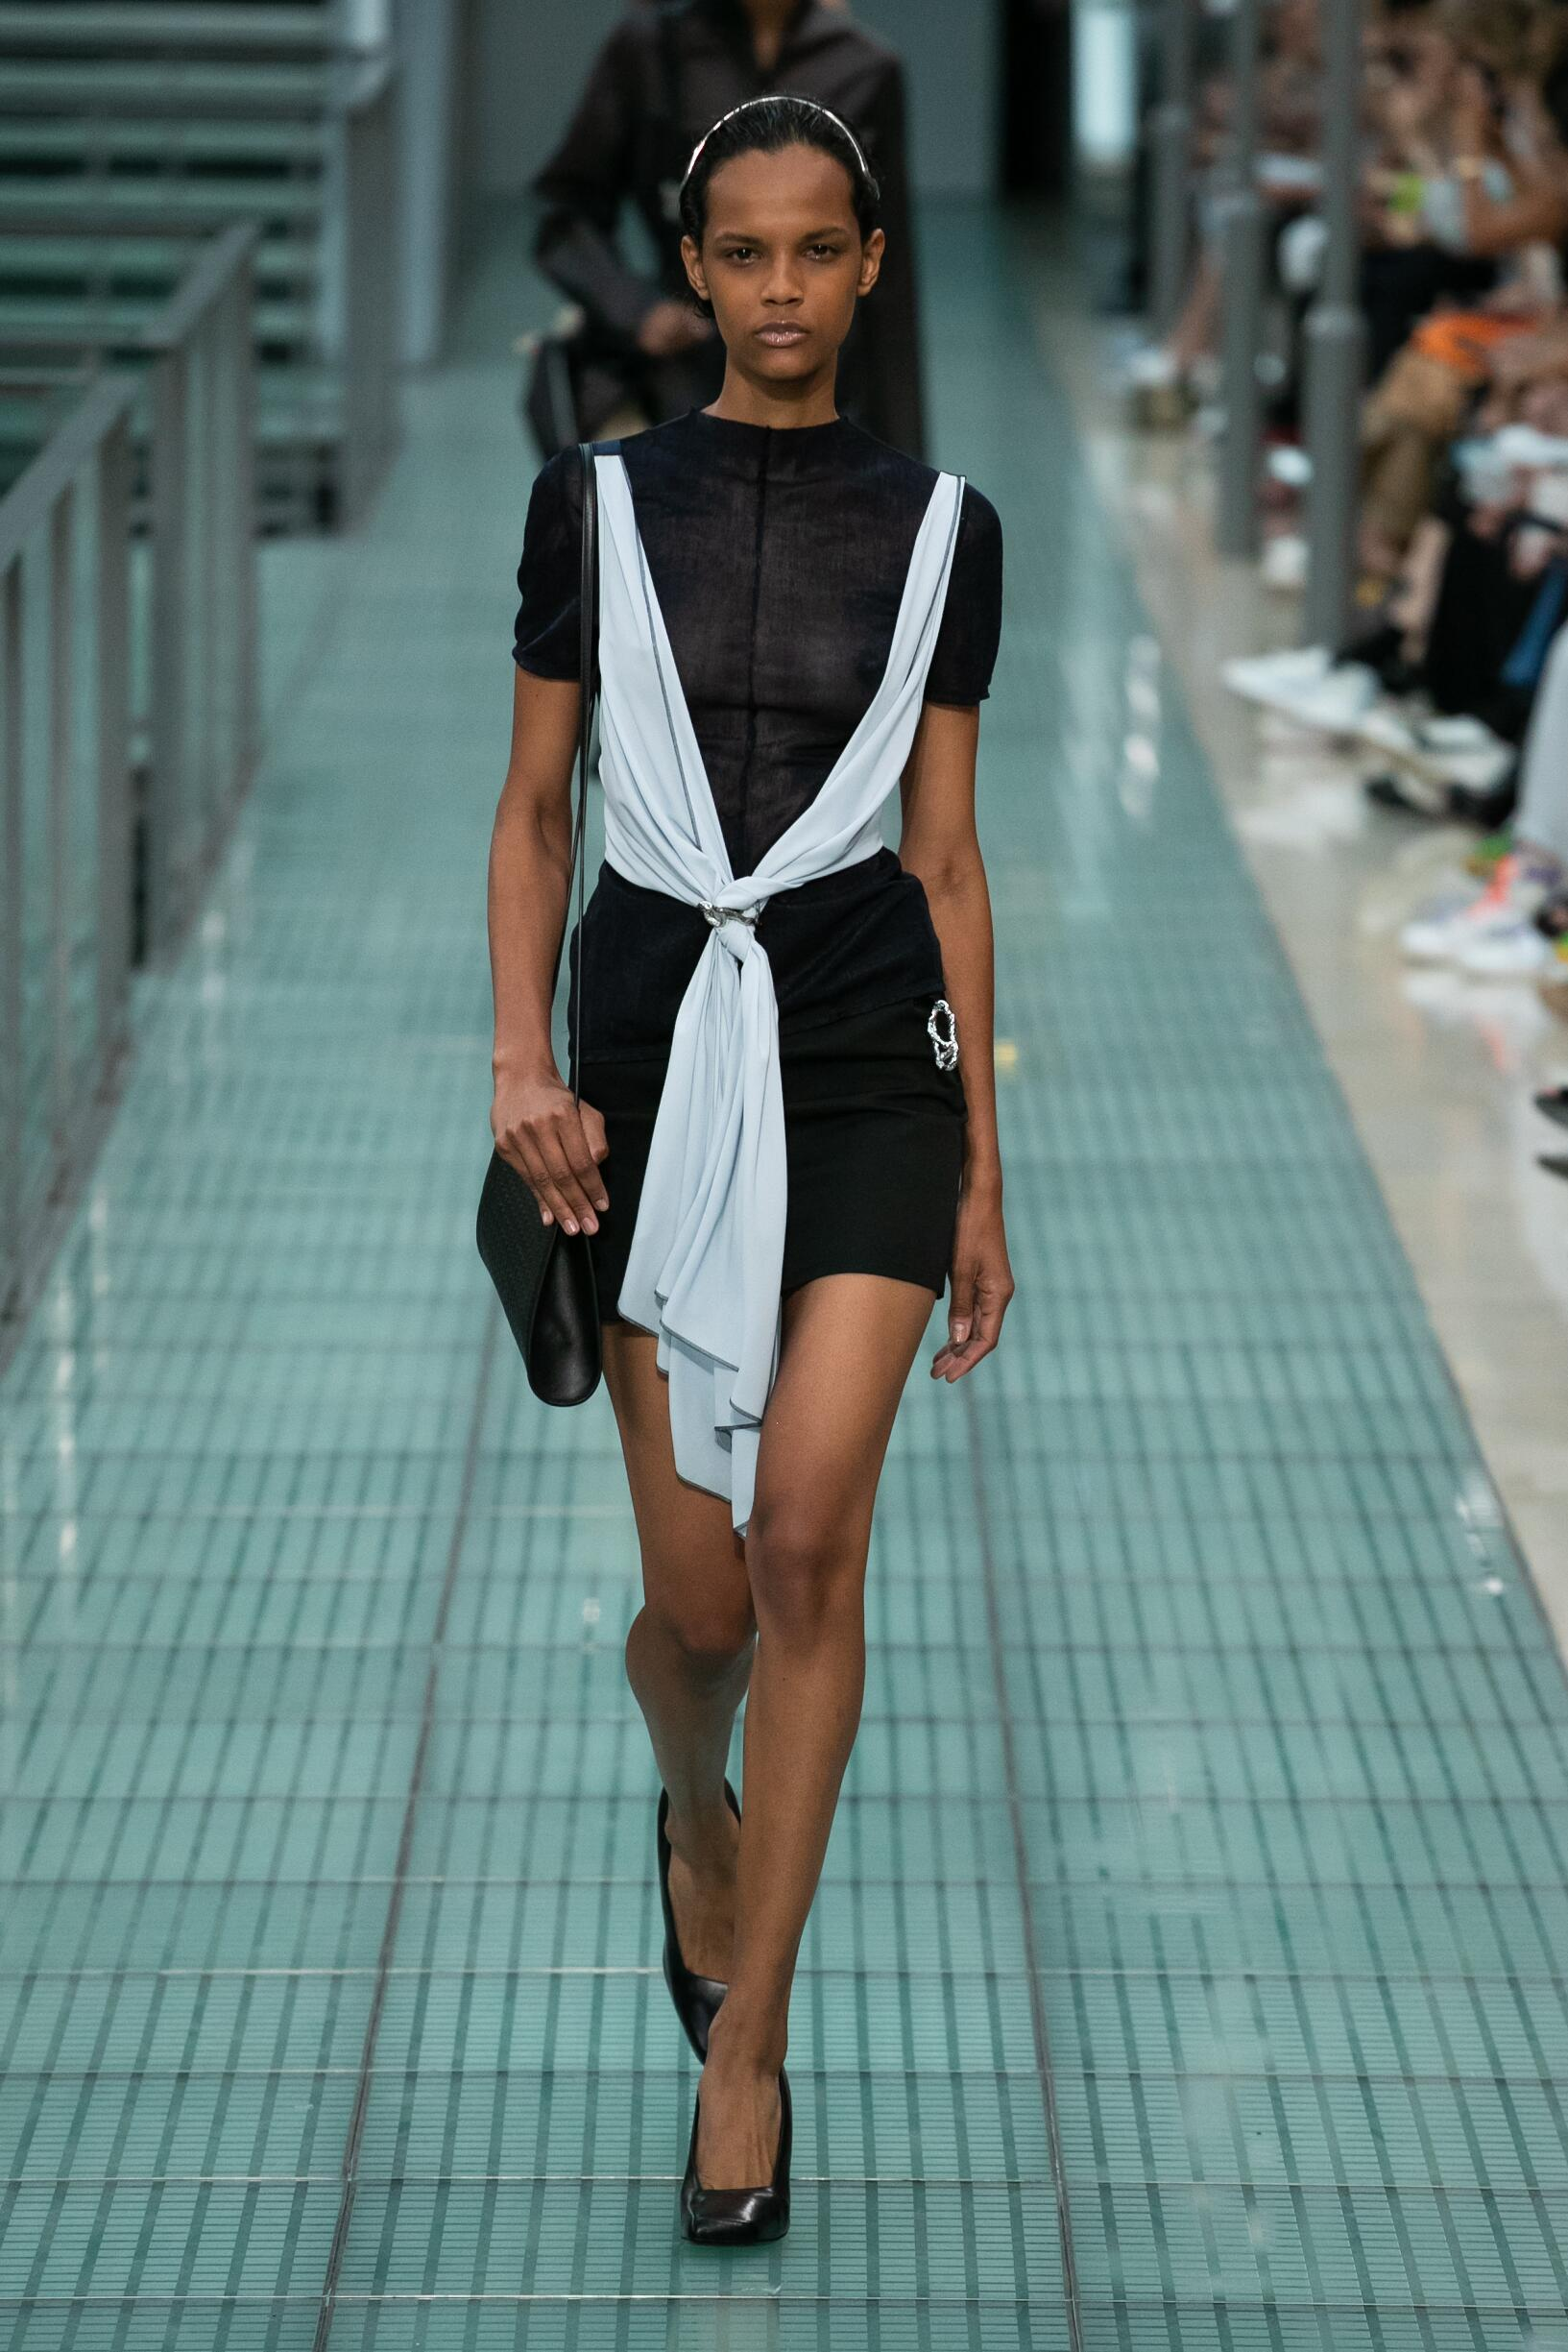 Alyx Womenswear Collection Trends